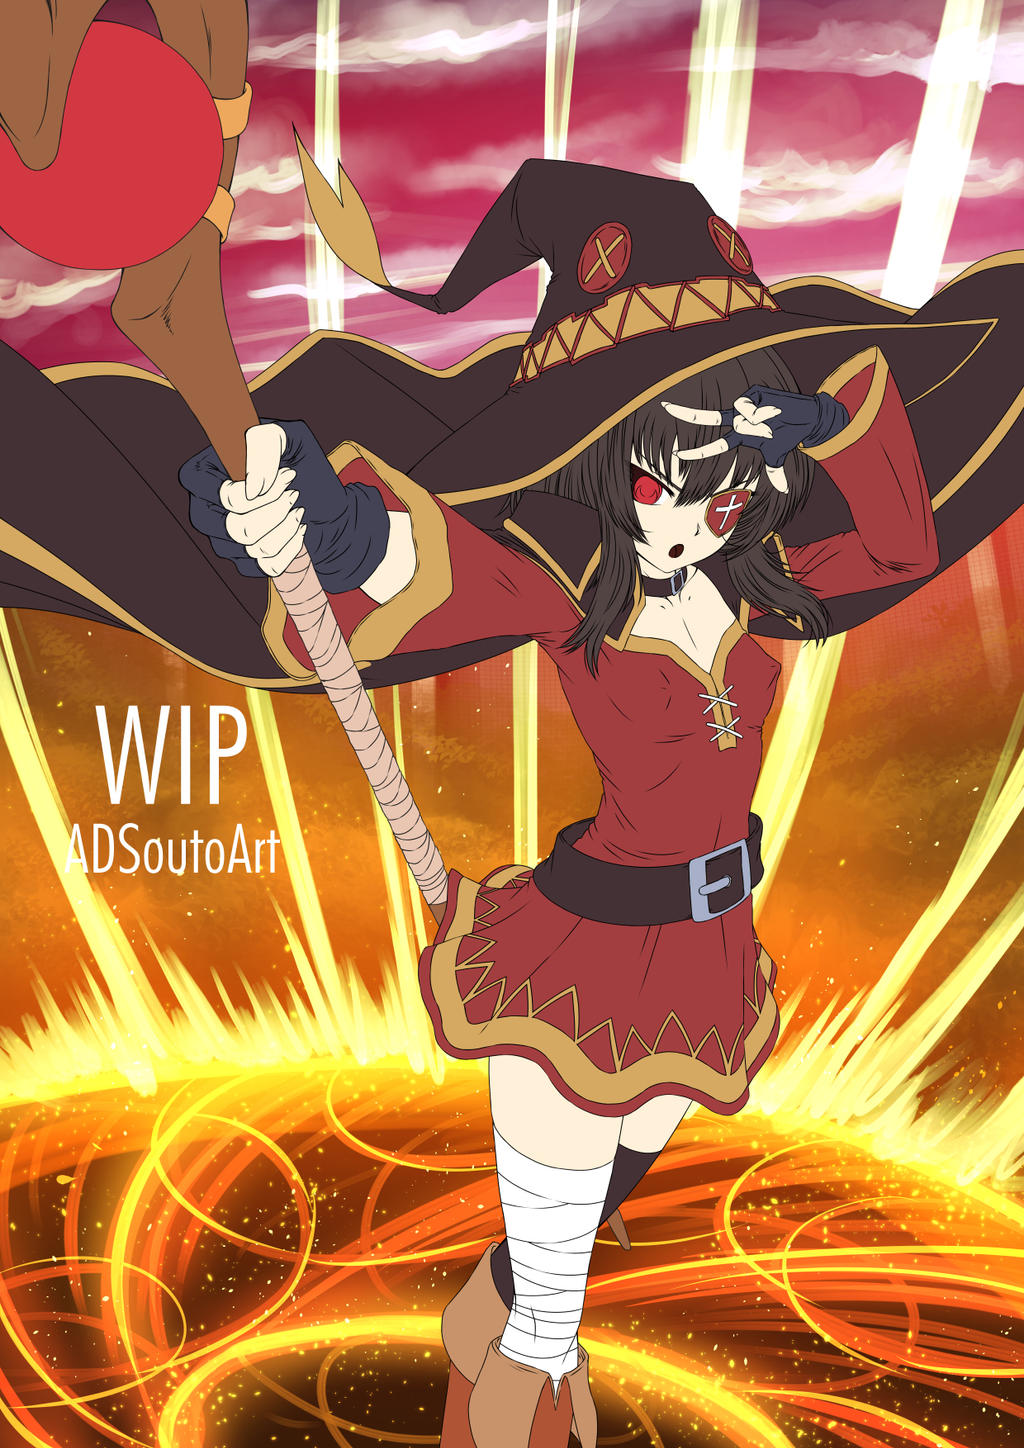 WIP - Megumin, Arch Wizard by ADSouto